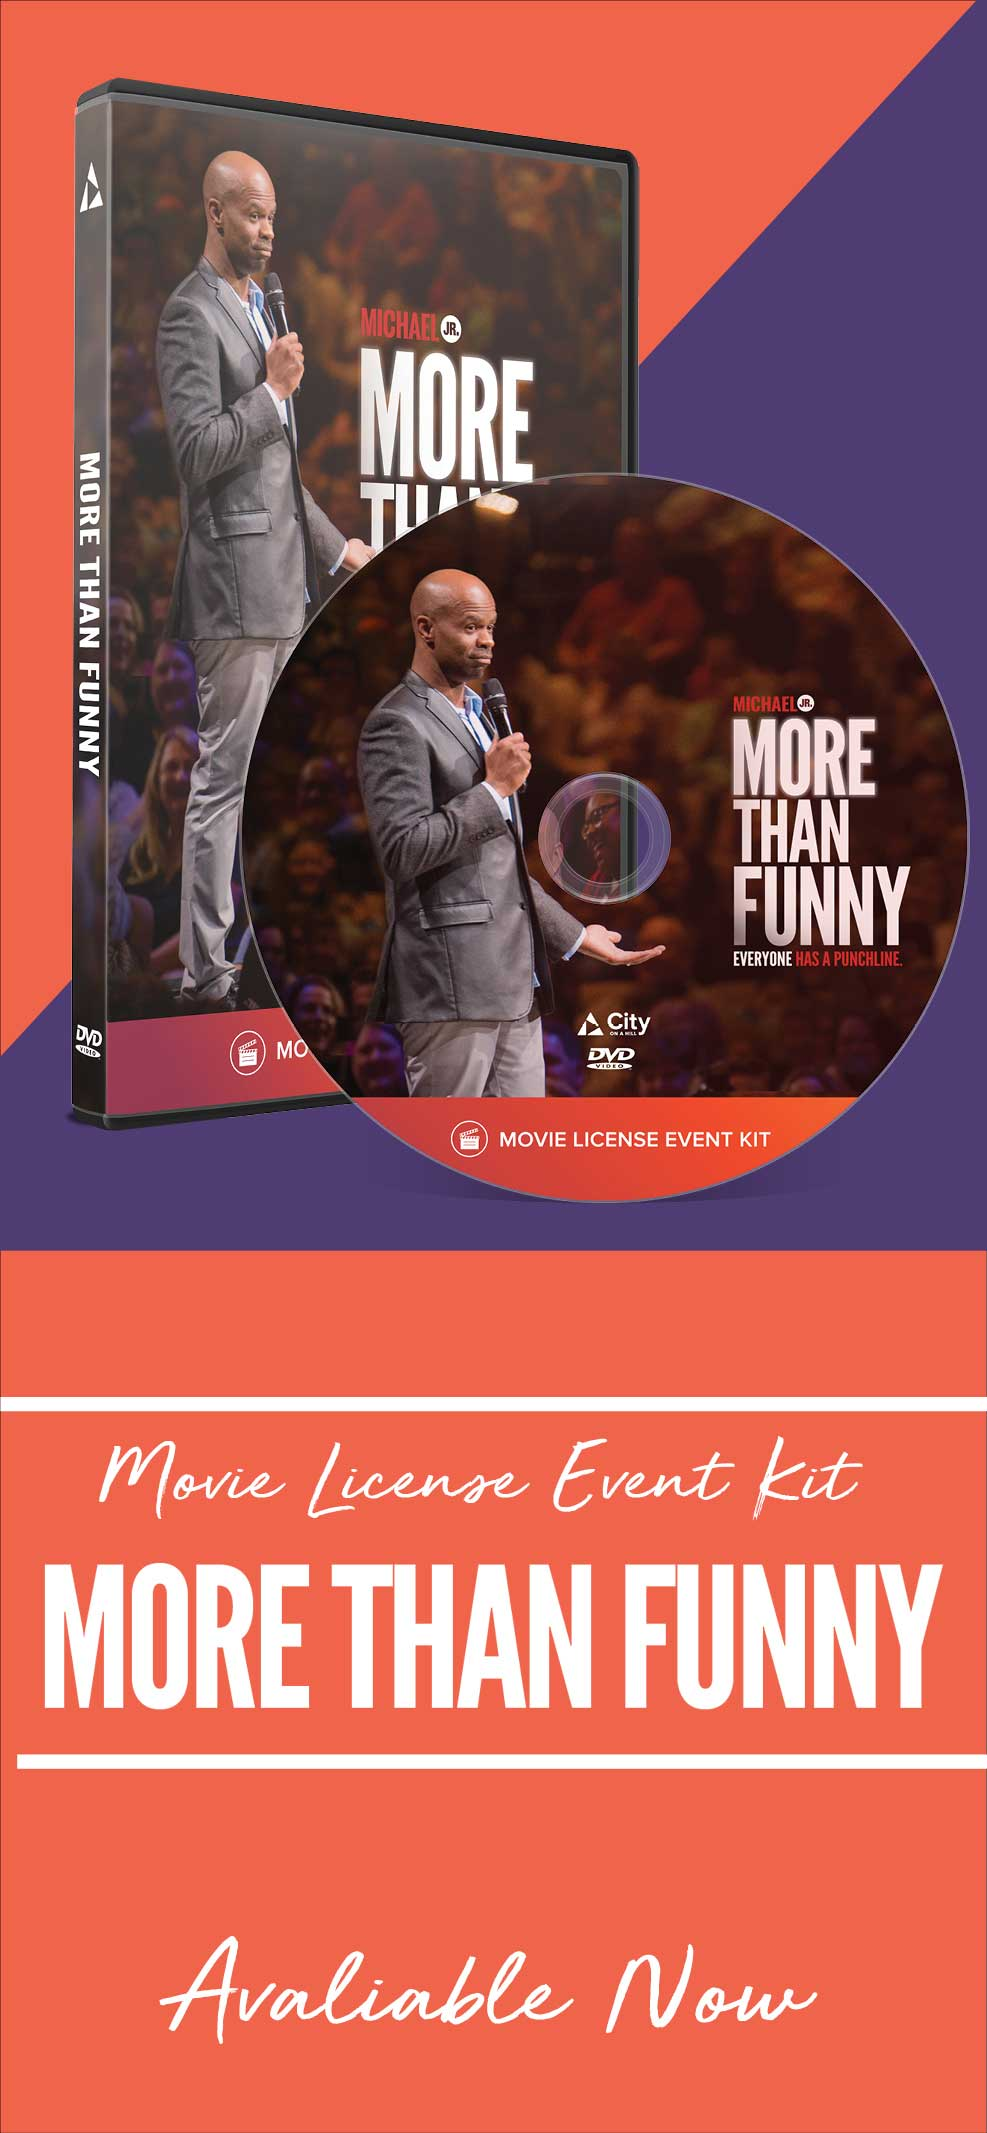 More Than Funny Movie License Kit Now Available